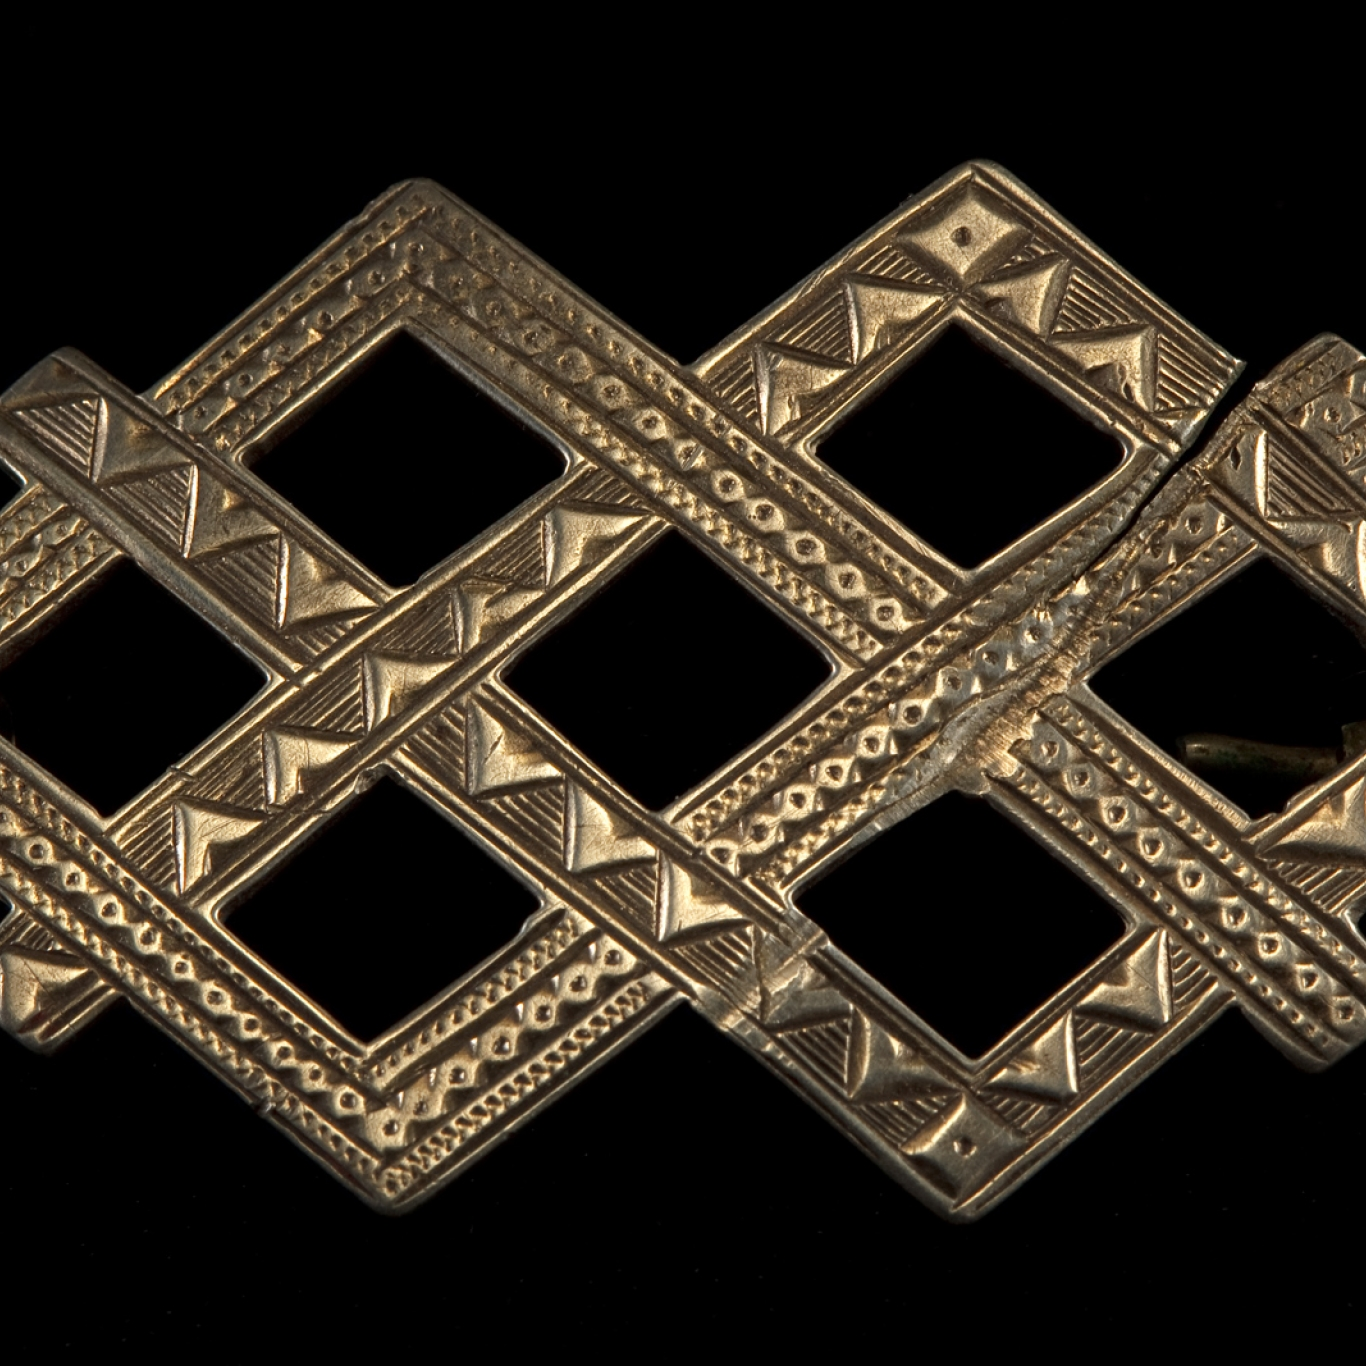 Silver/nickel brooch in the shape of 2 interlocking diamonds creating a lattice design with two contrasting surface textures - a chain pattern and a line of triangles.